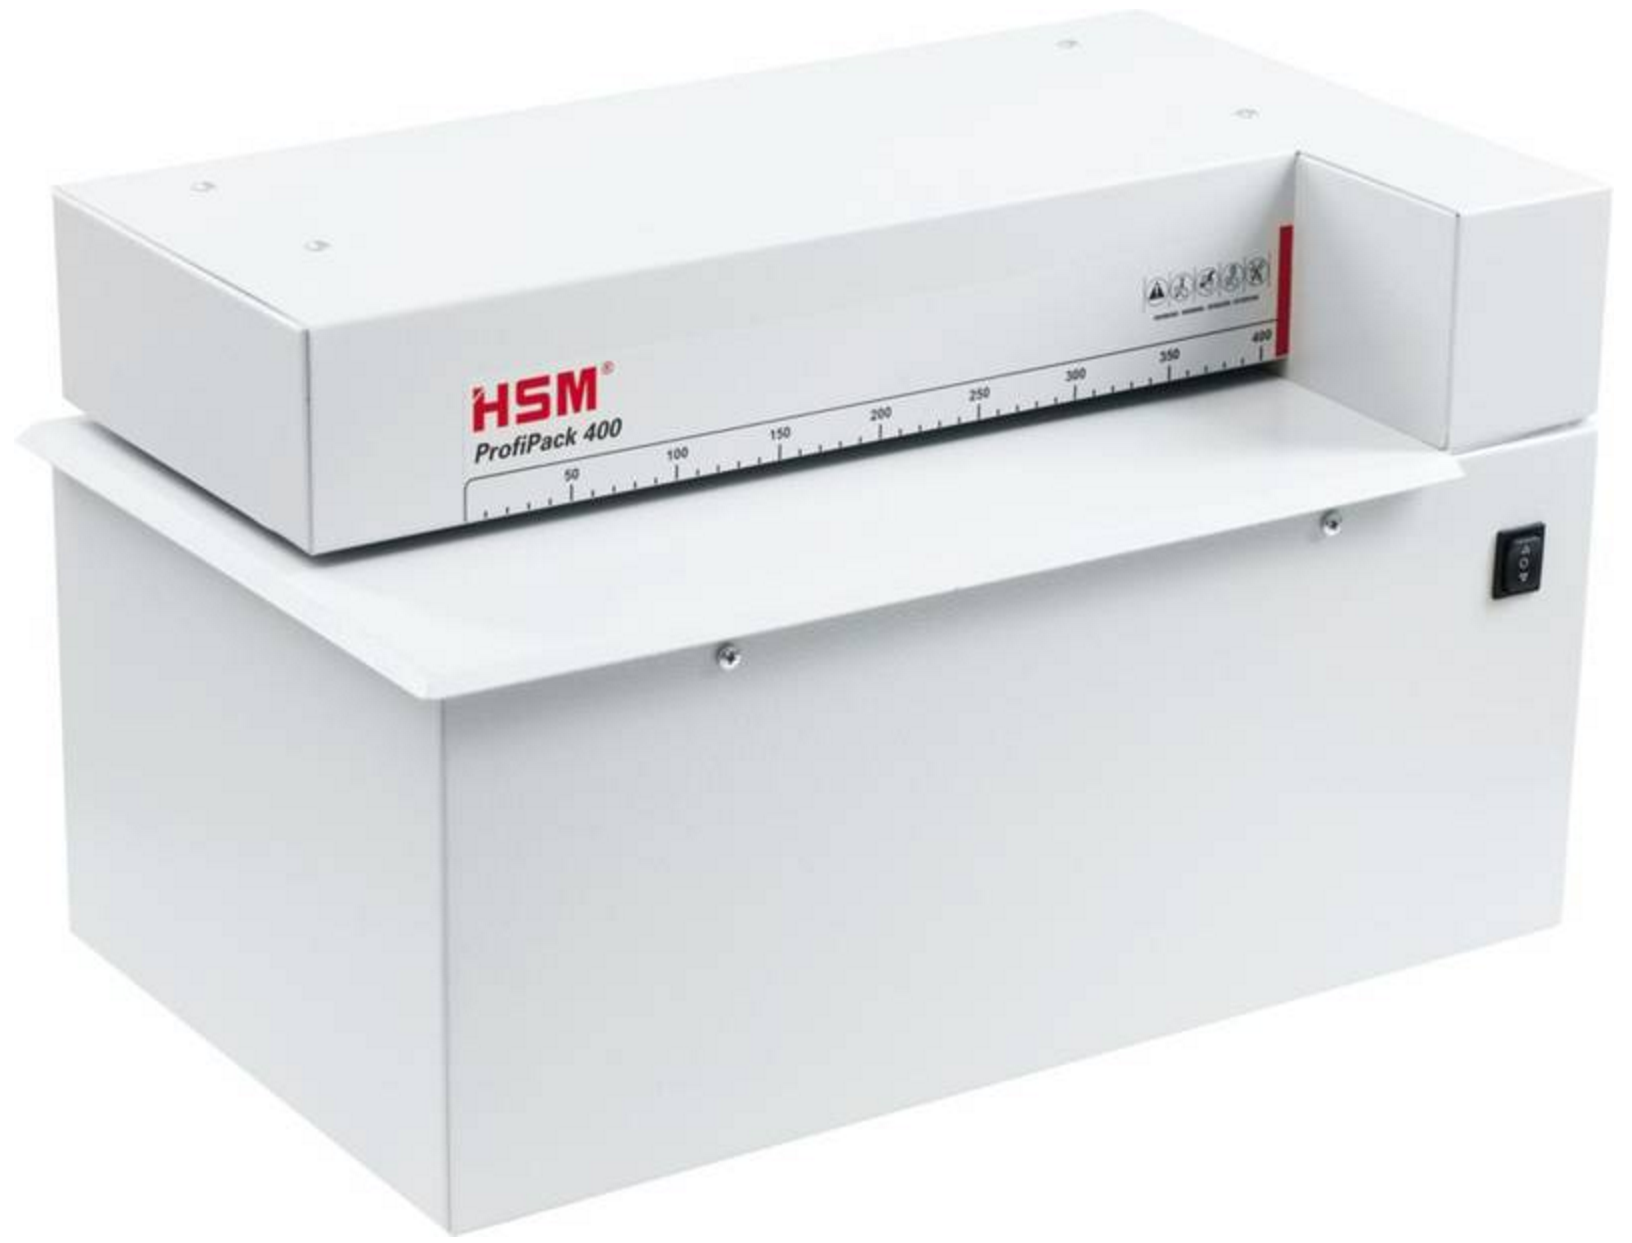 HSM ProfiPack 400 Cardboard Shredder for Upcycling Shipping & Packing Material